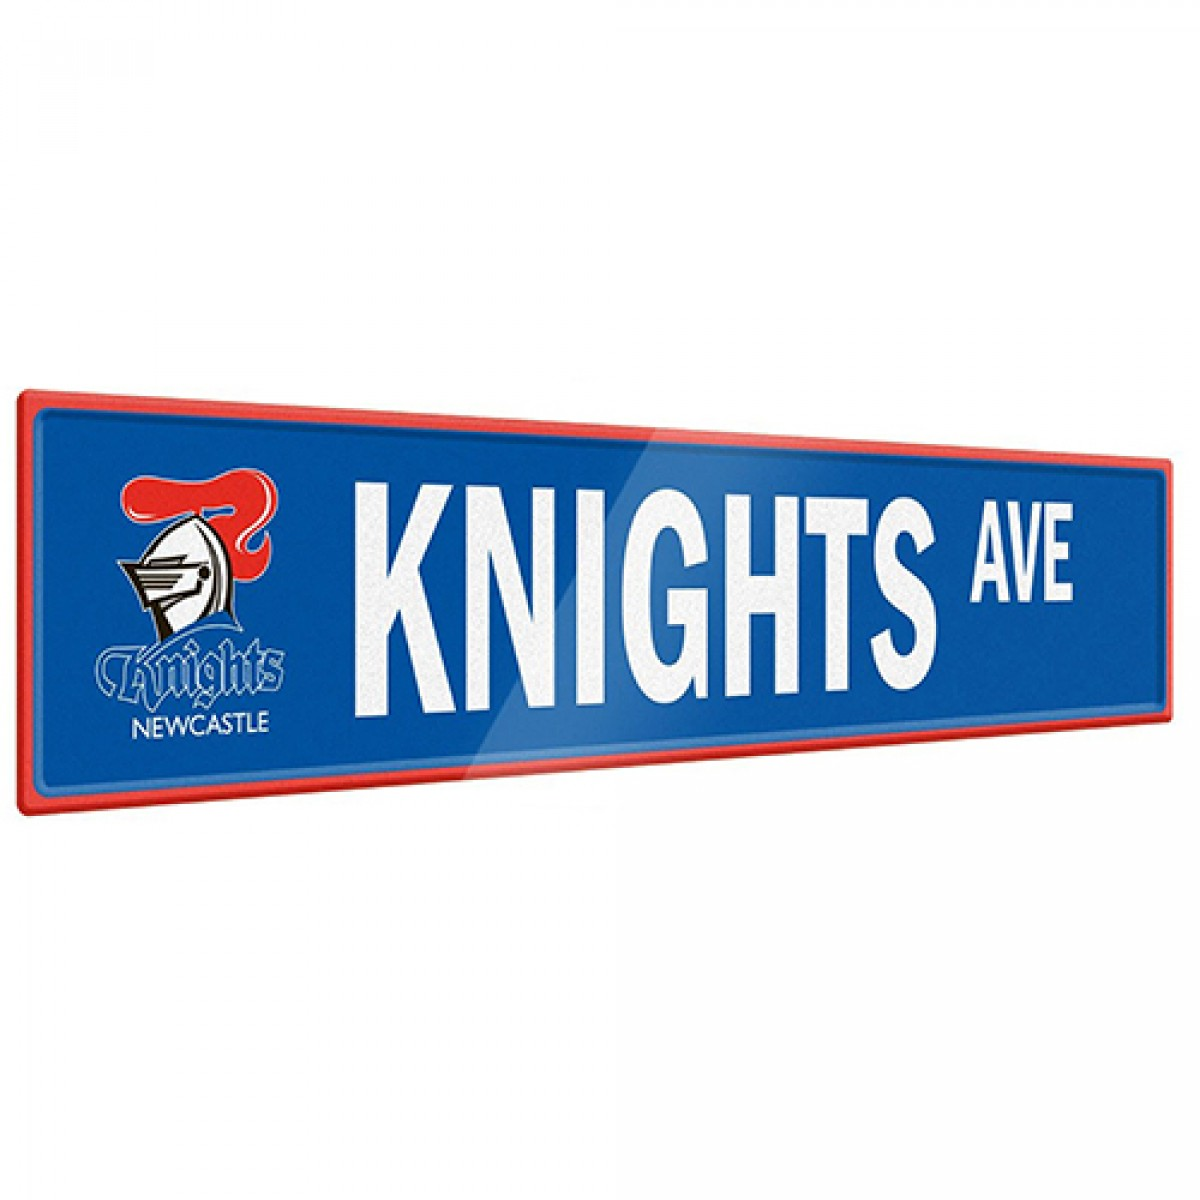 KNIGHTS STREET SIGN Sport Tin Signs Man Zone